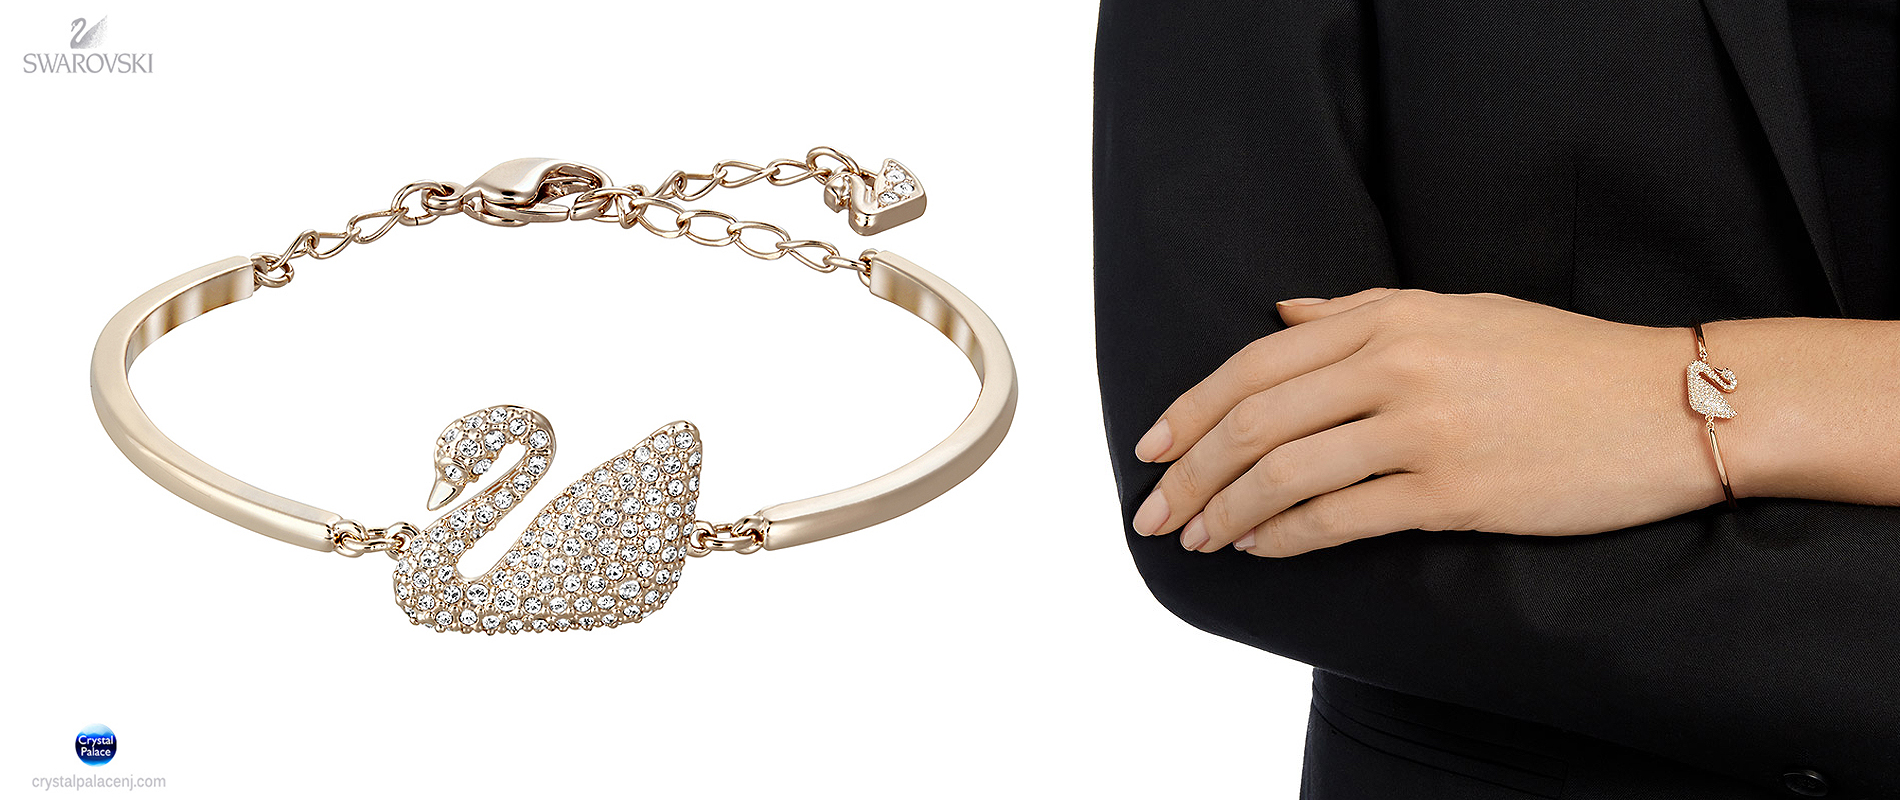 5142752 Swarovski Jewelry Swan Bangle d76022e44c